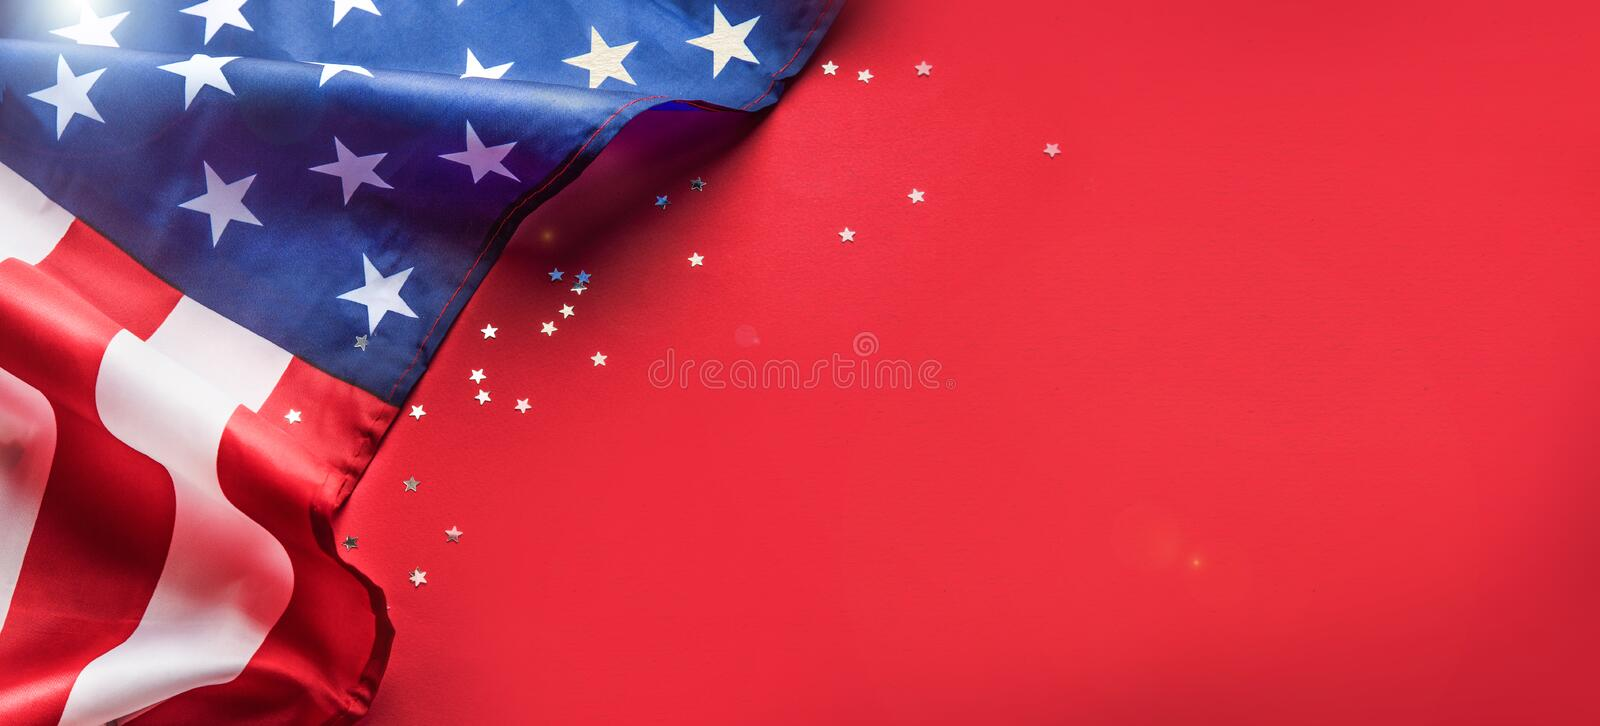 Celebrating Independence Day. United States of America USA flag background for 4th of July. Copyspace.  royalty free stock photos